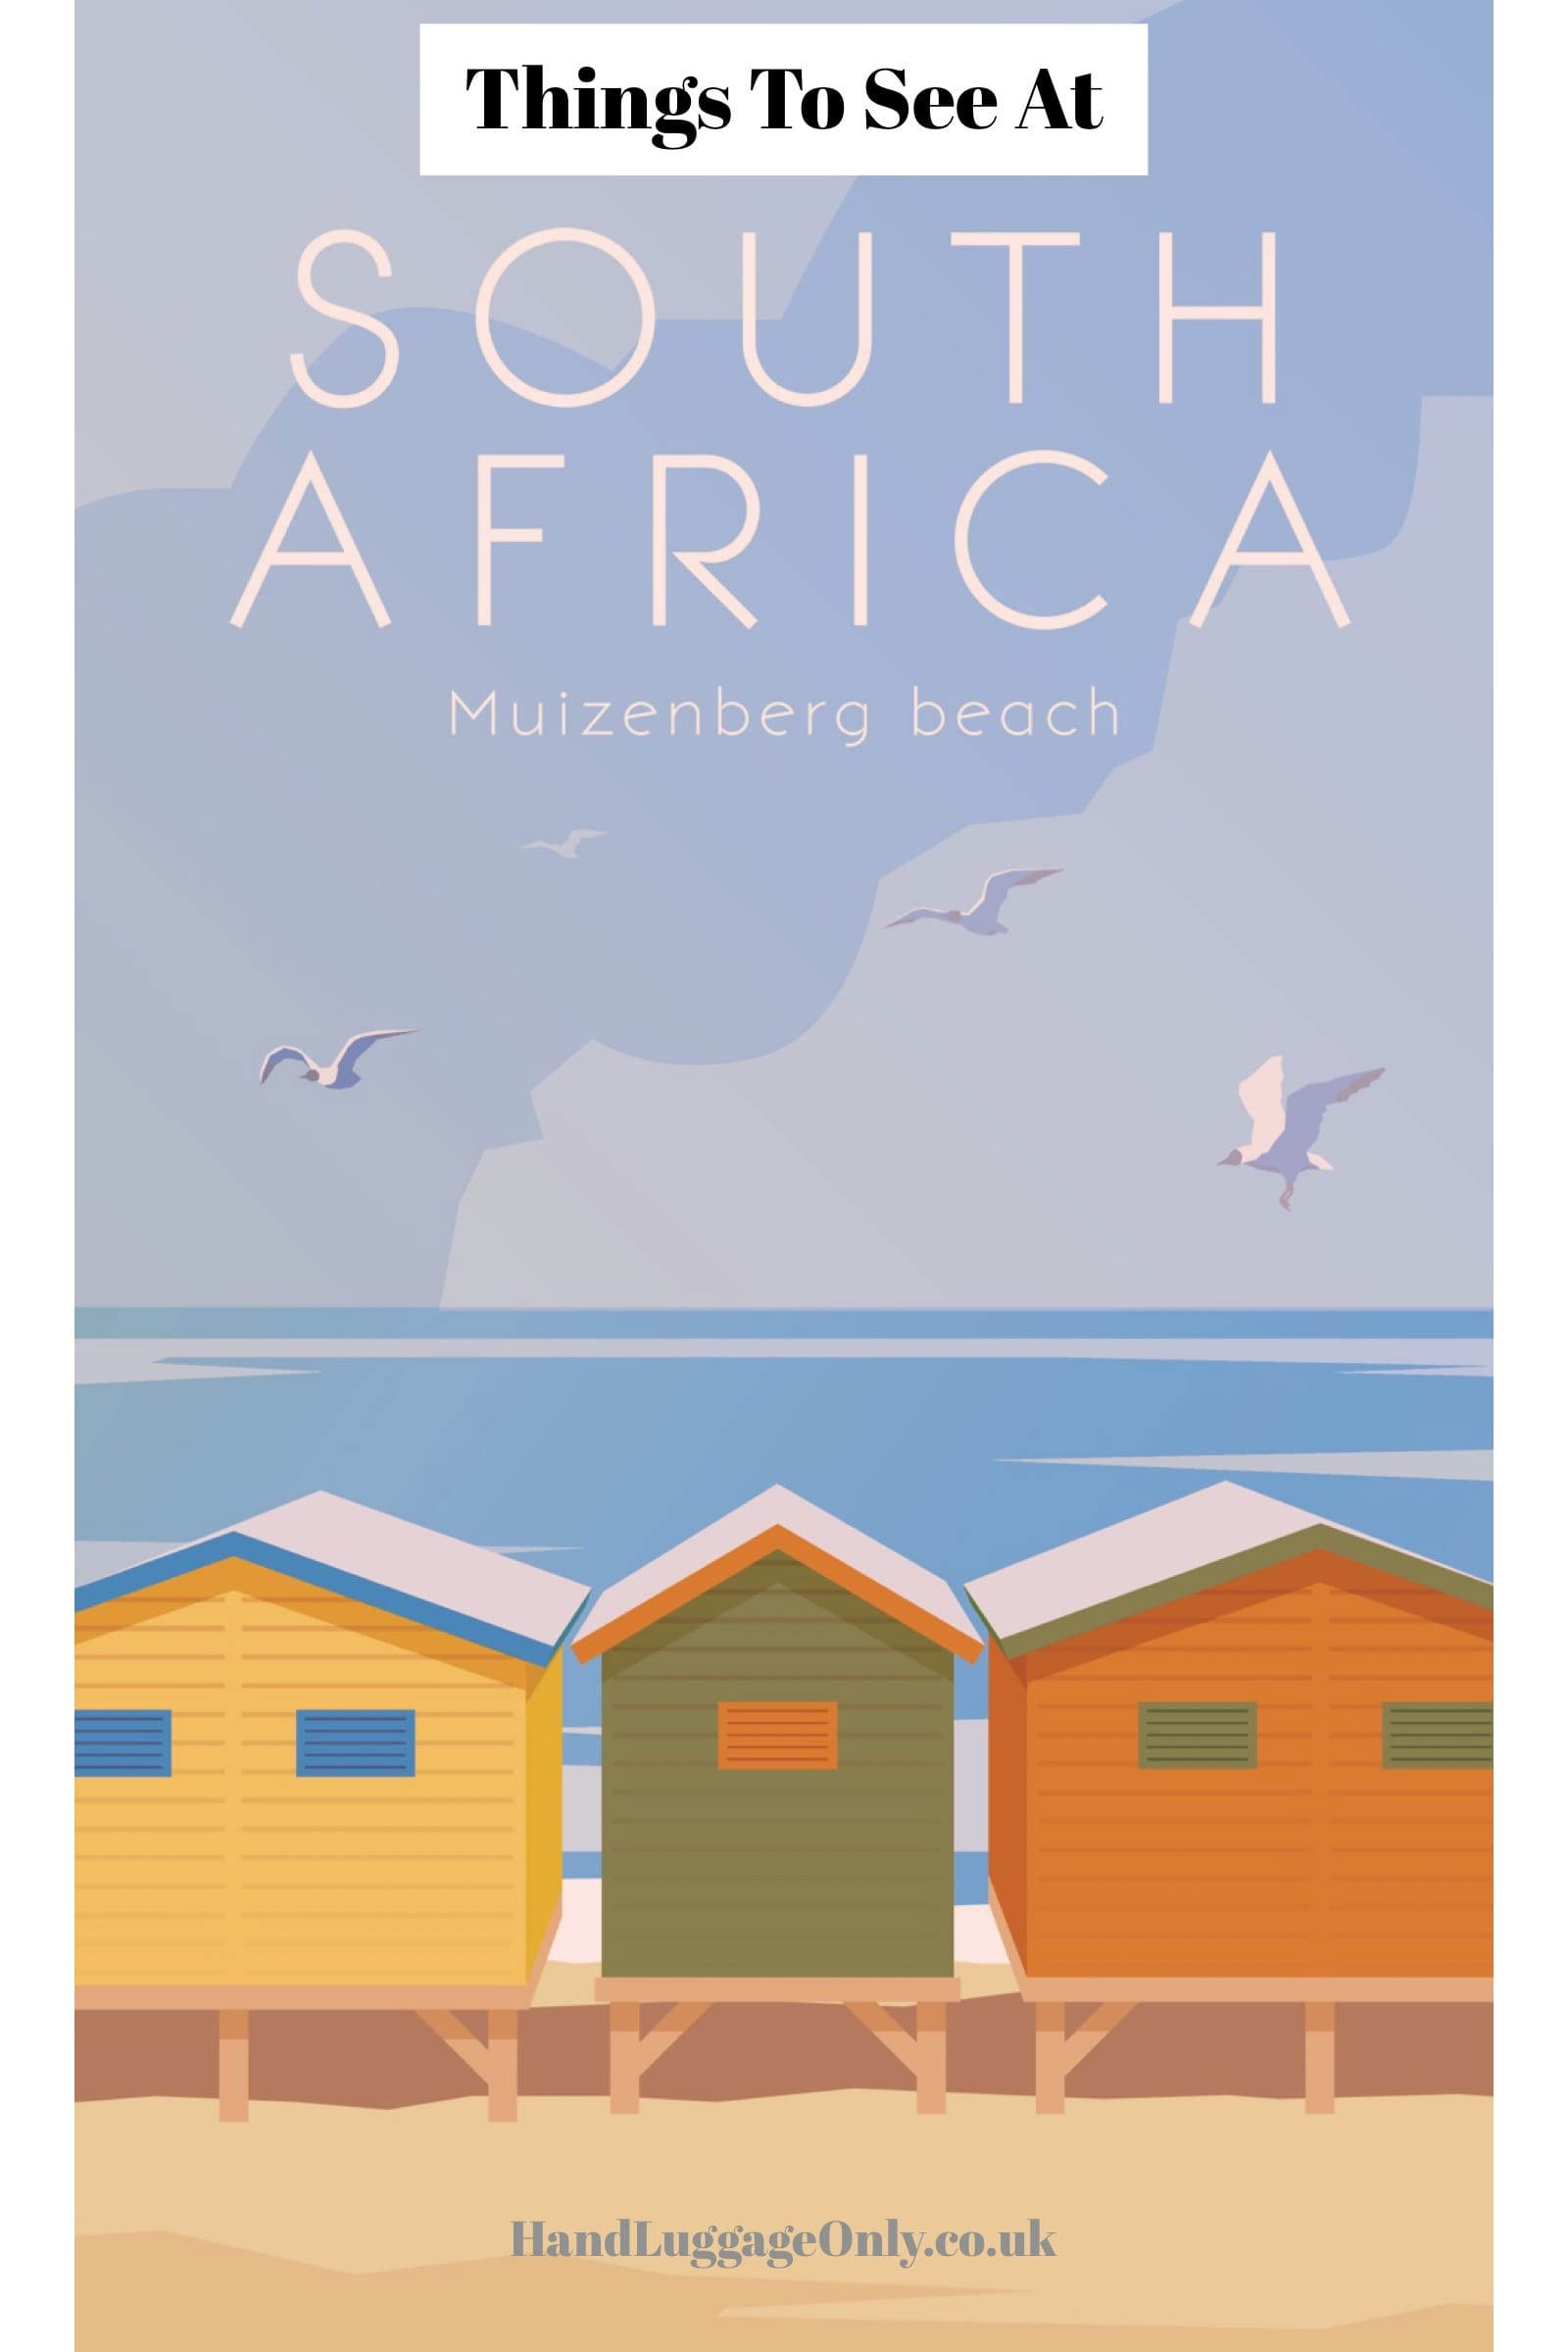 Here's Why You Need To Visit Muizenberg Beach, South Africa